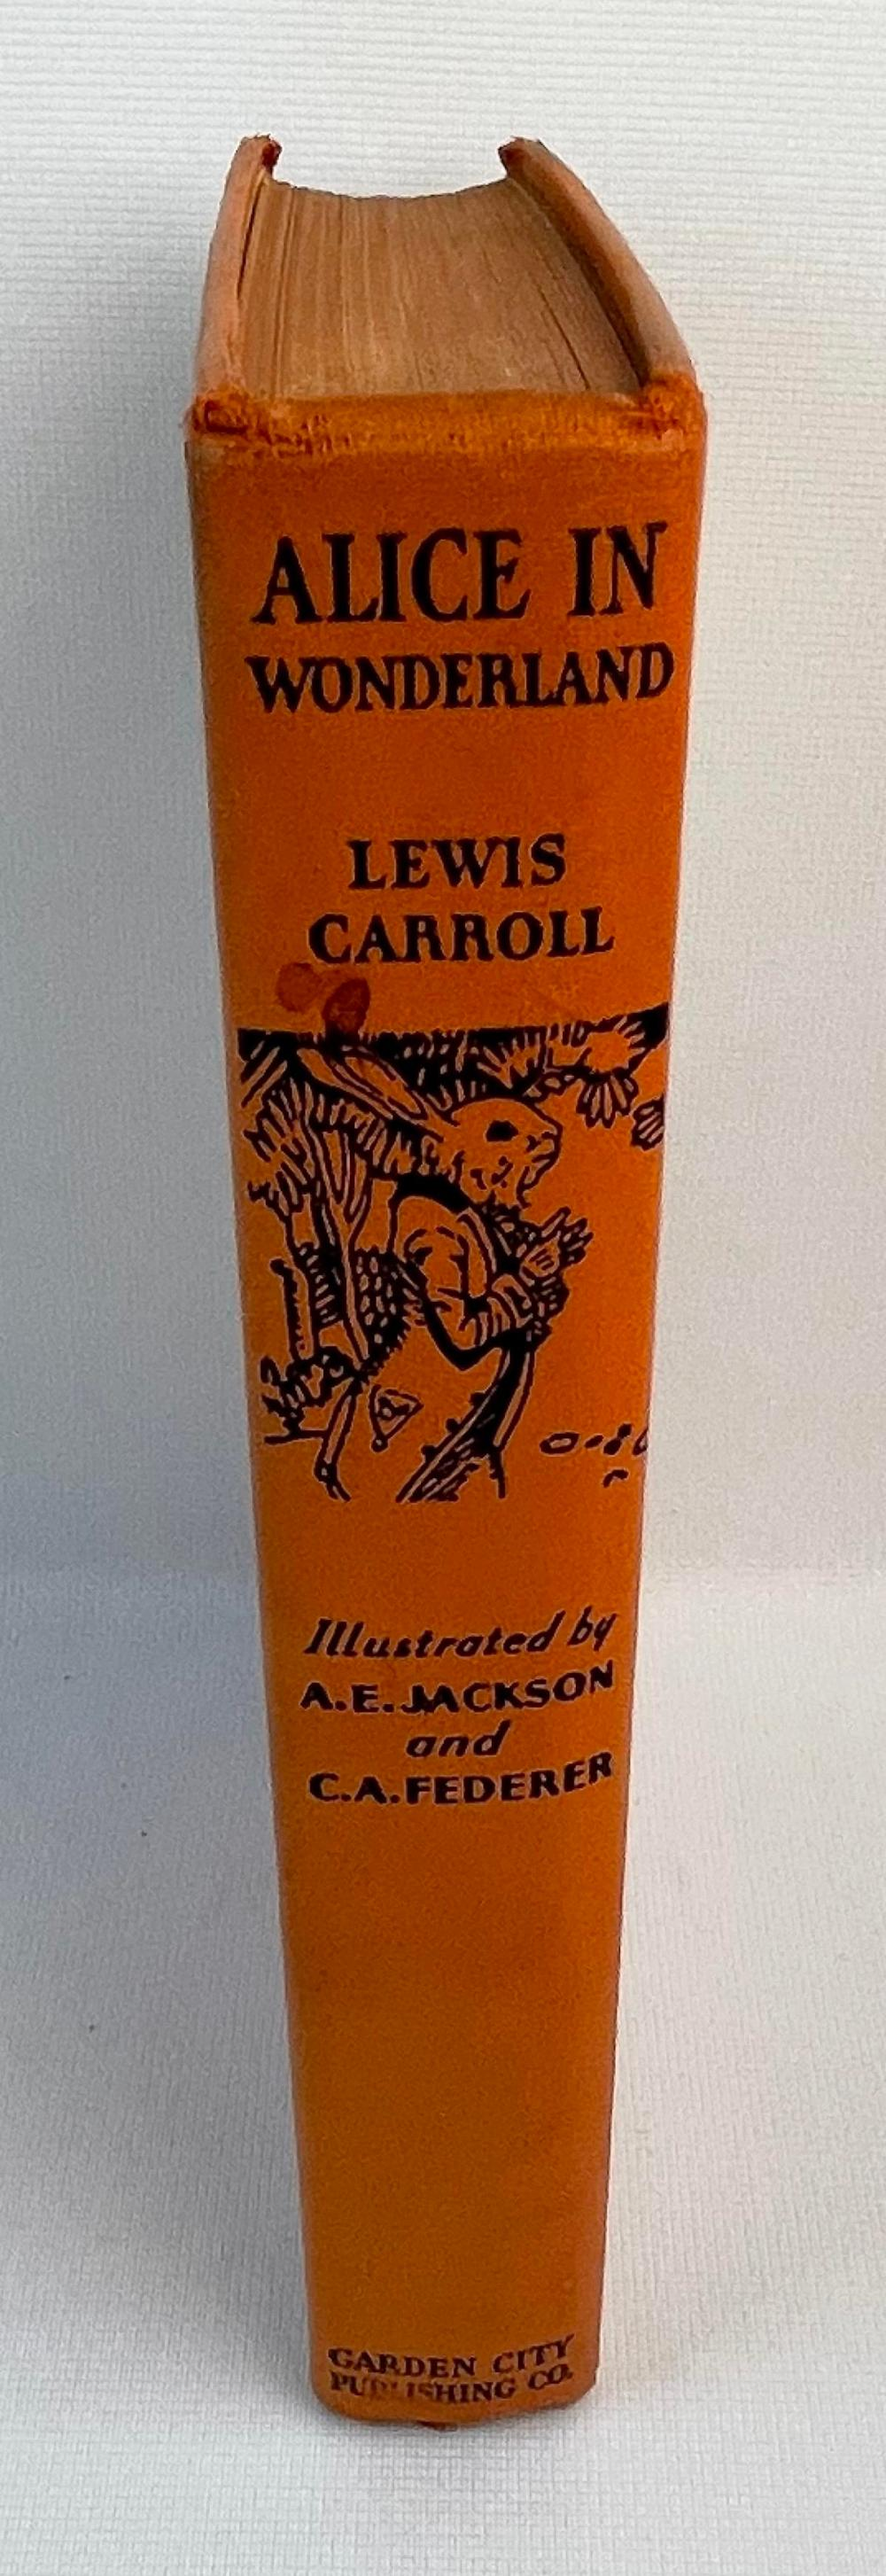 Alice in Wonderland by Lewis Carroll c. 1930 ILLUSTRATED